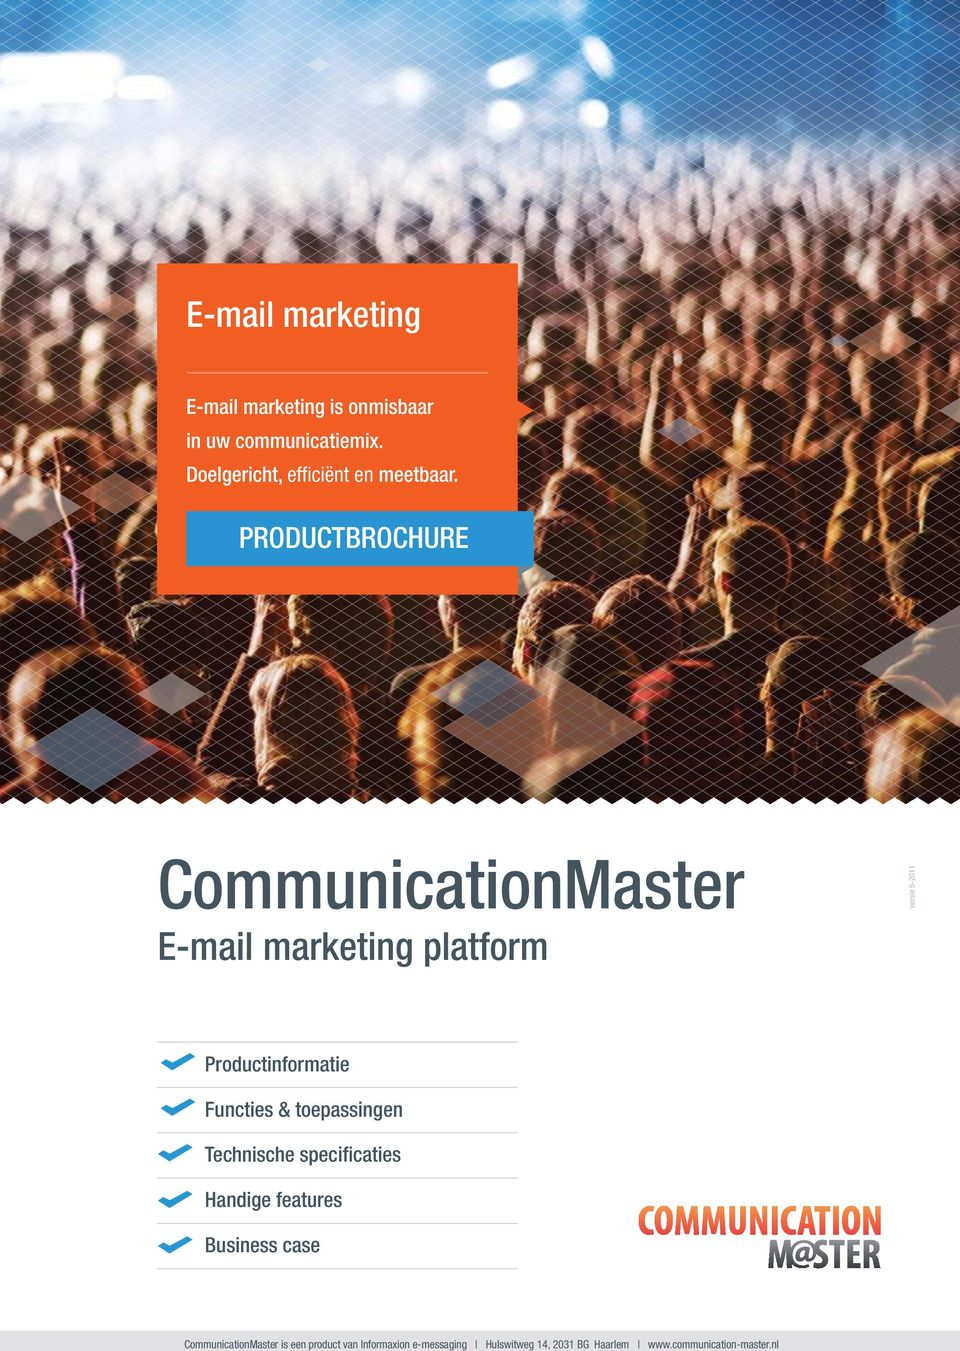 PRODUCTBROCHURE CommunicationMaster E-mail marketing platform versie 5-2011 Productinformatie